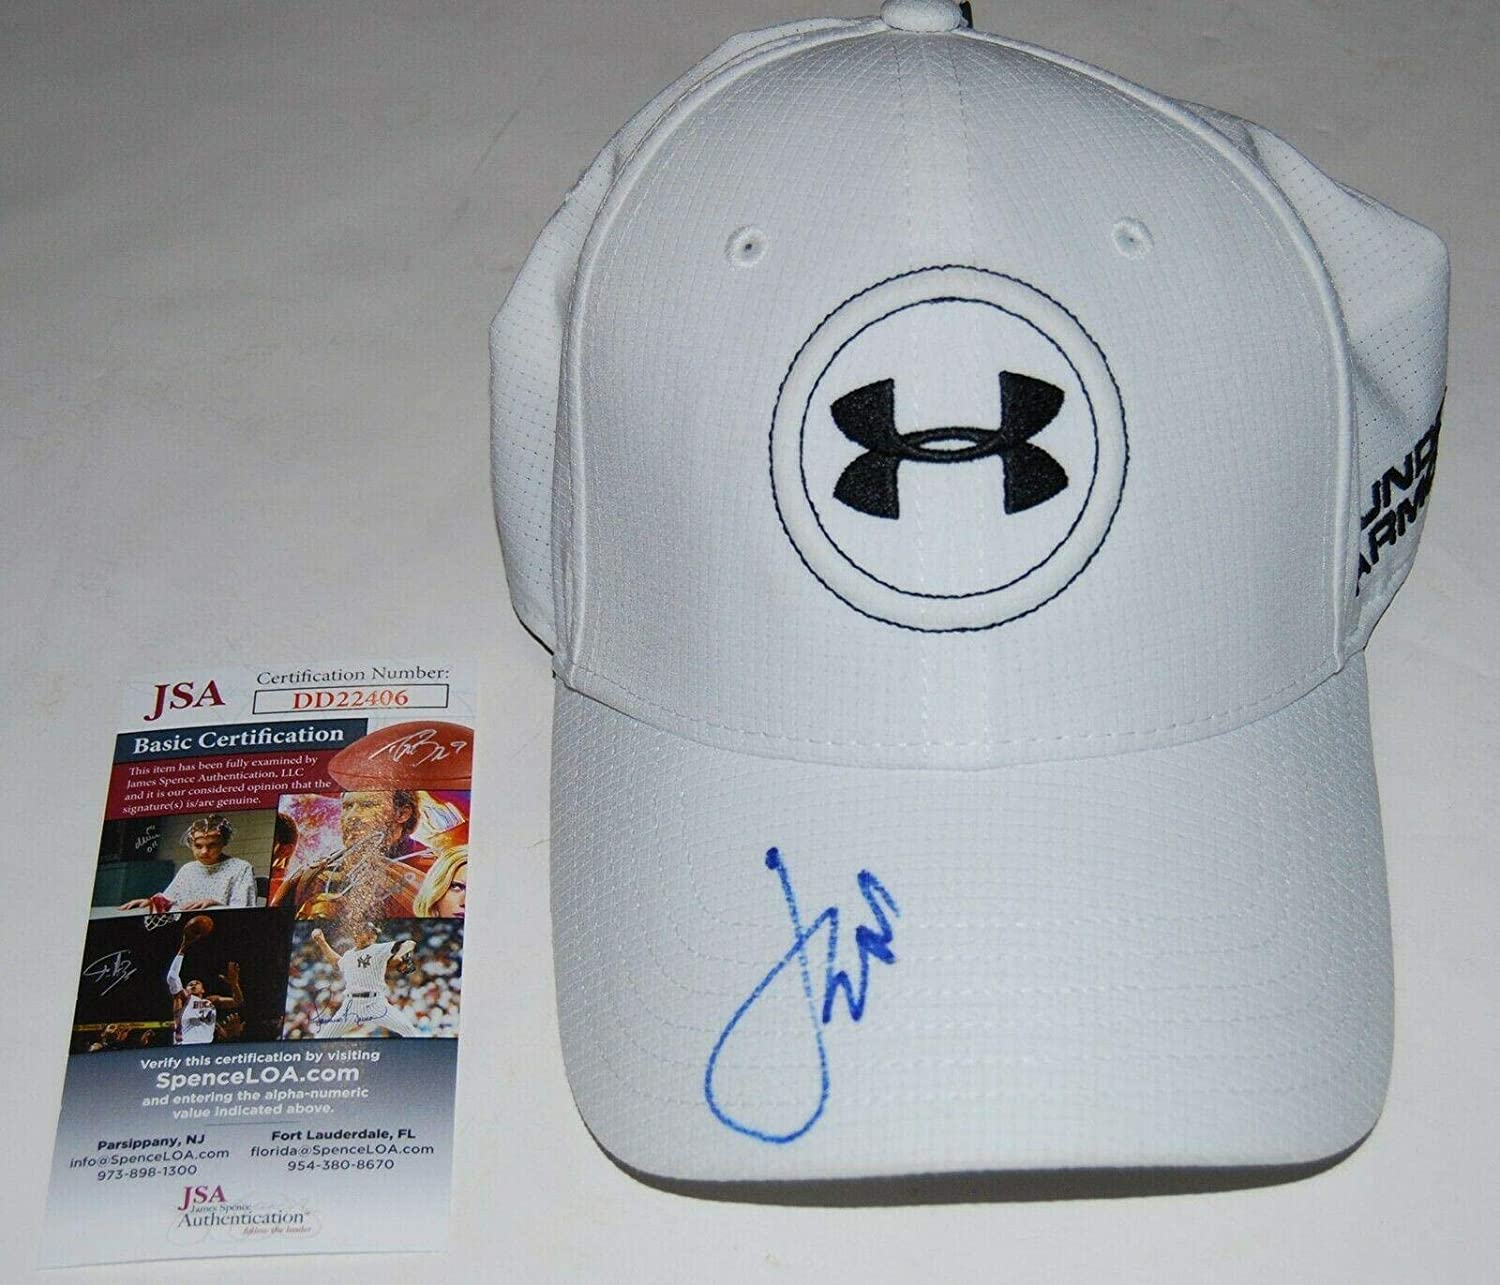 0bcc680948e JORDAN SPIETH signed (UNDER ARMOUR) White Golf hat cap Authenticated  2 - JSA  Certified - Autographed Golf Equipment at Amazon s Sports Collectibles Store